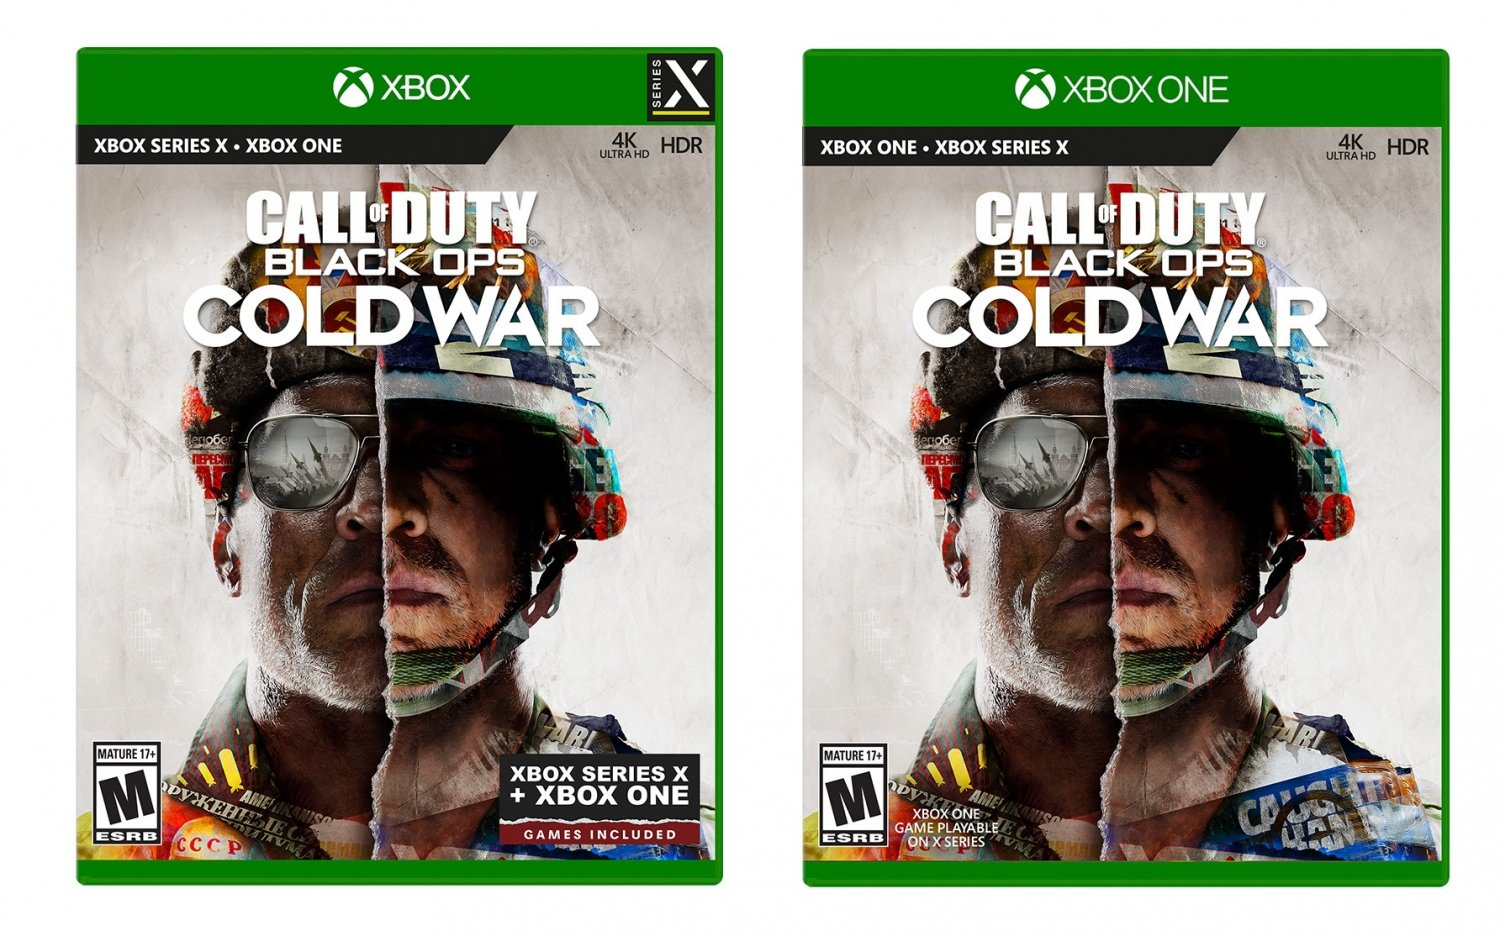 Finalized Next Gen Xbox Series X Game Cases Vs Xbox One Cases Revealed Tweaktown